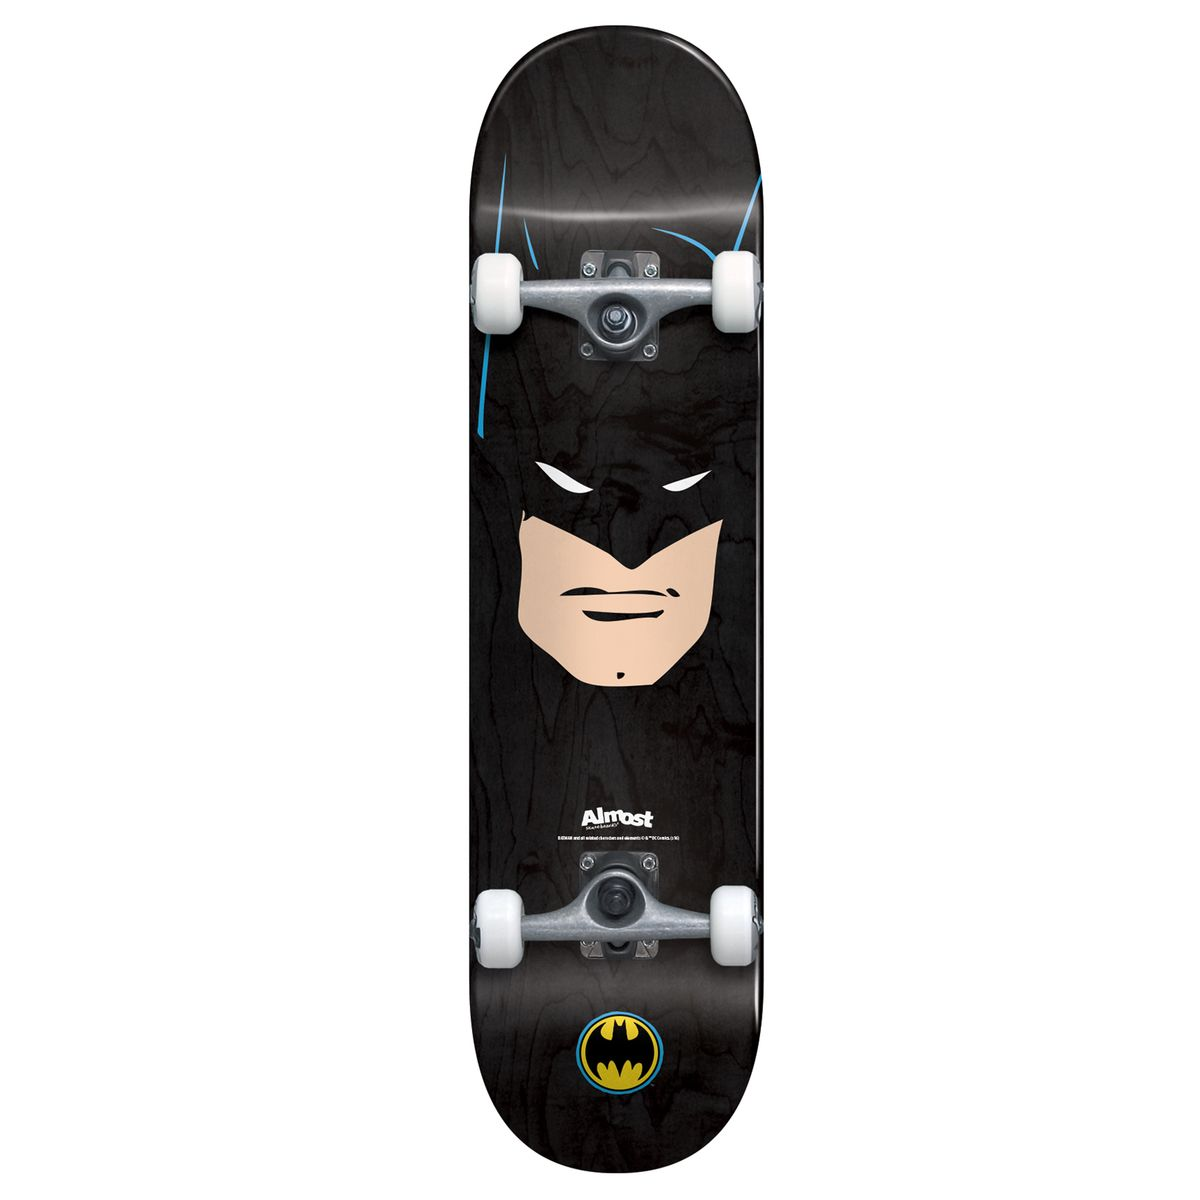 Almost x DC Comics Complete Skateboard Batman Face 7.75 FREE POST